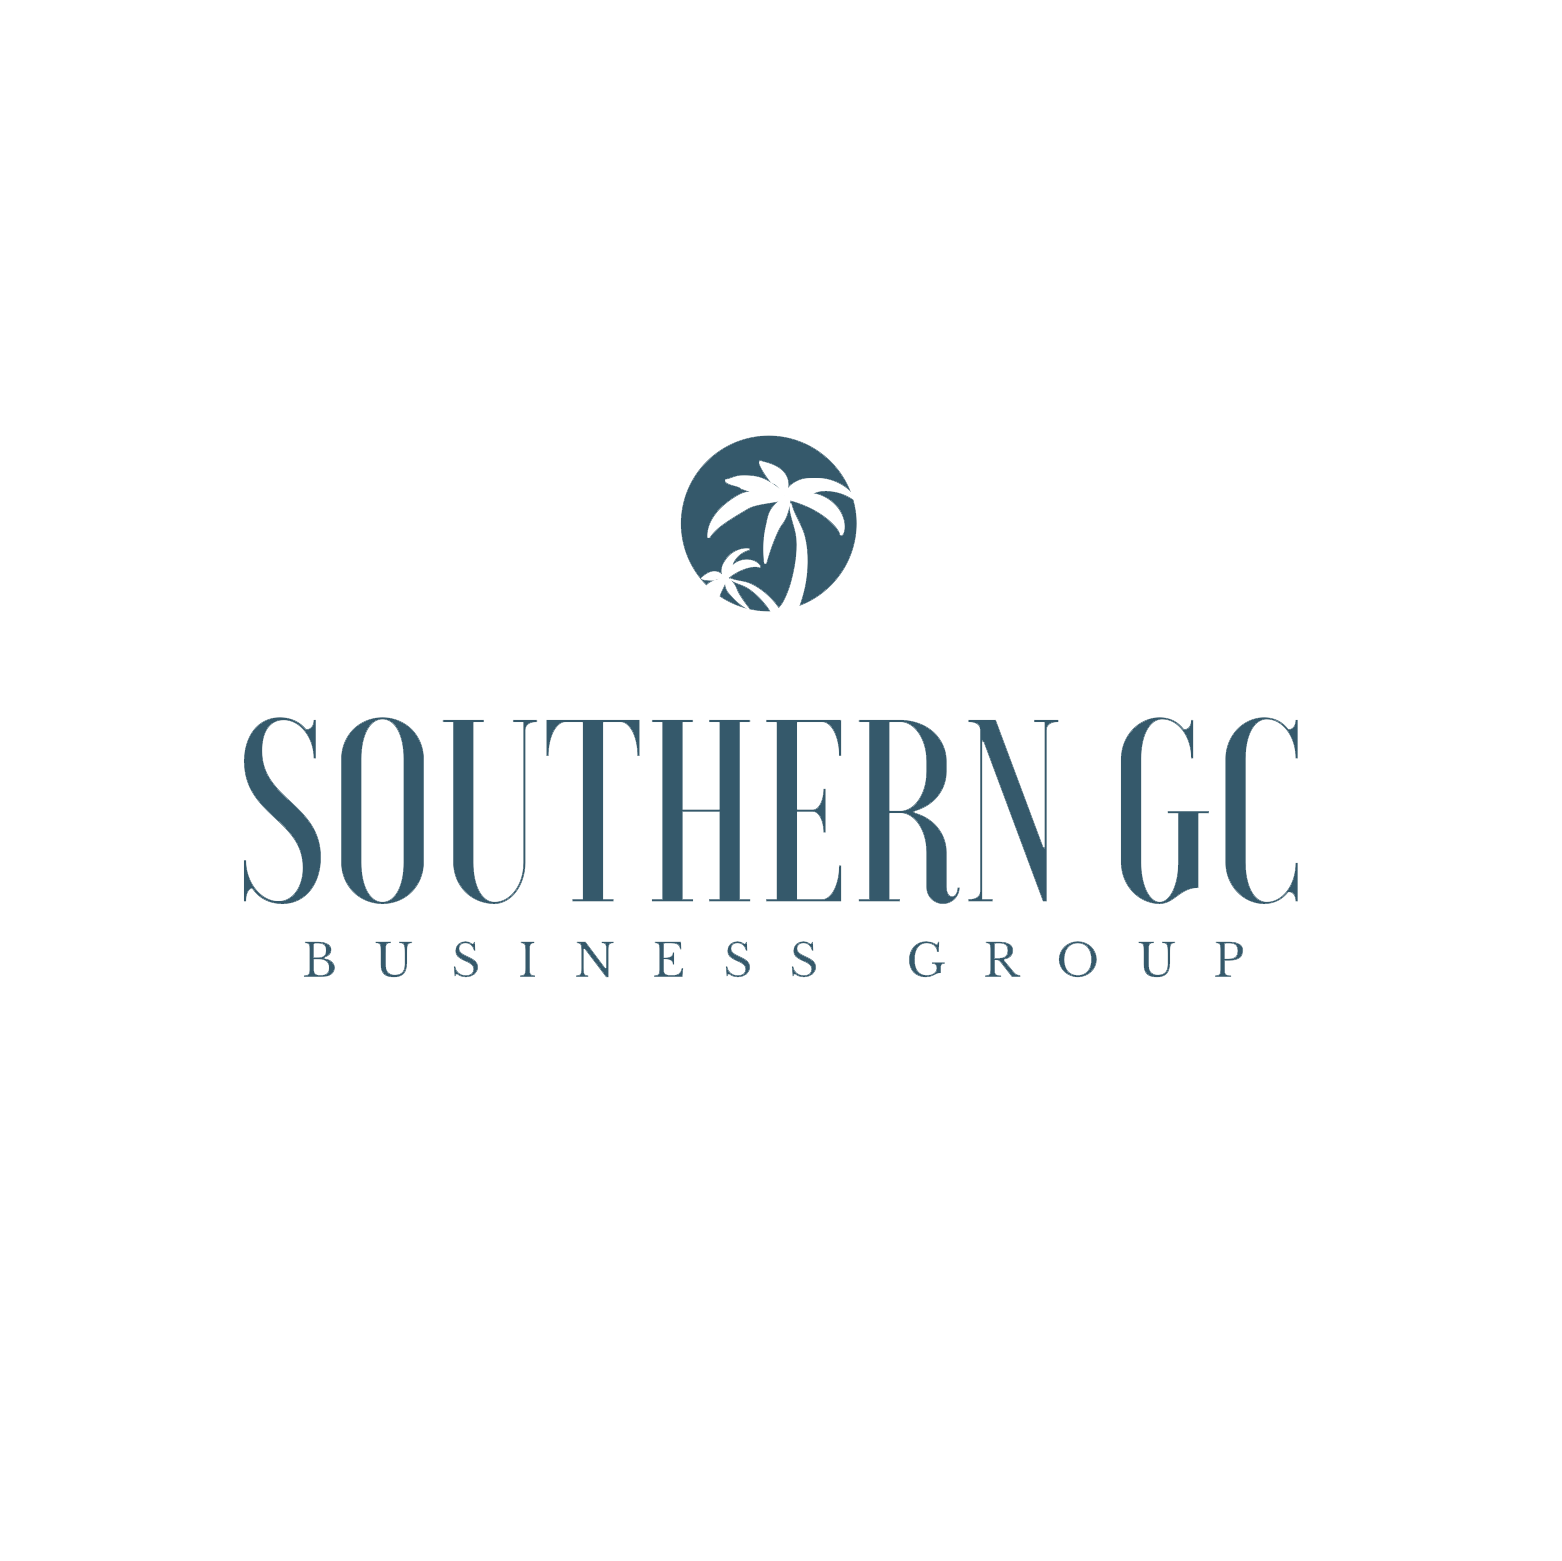 Southern GC Business Group V4 copy.png